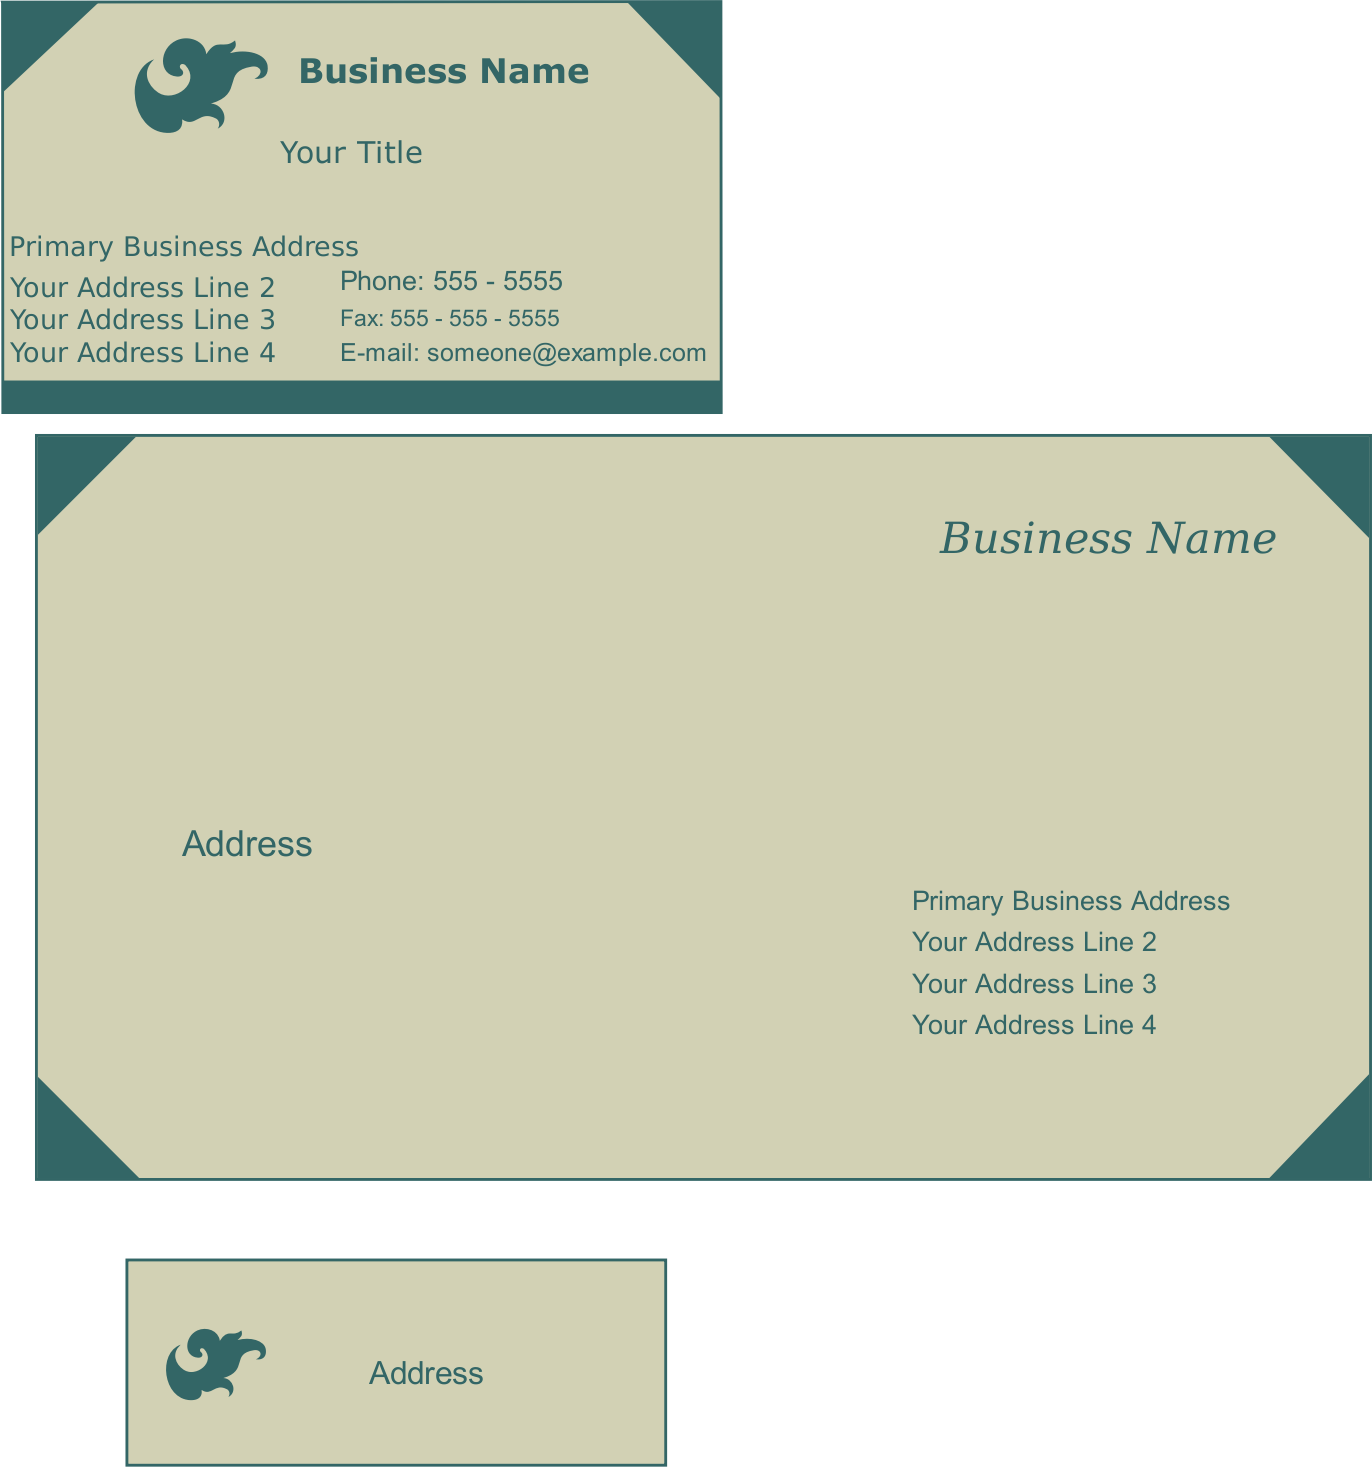 Stationery Templates by sRawa